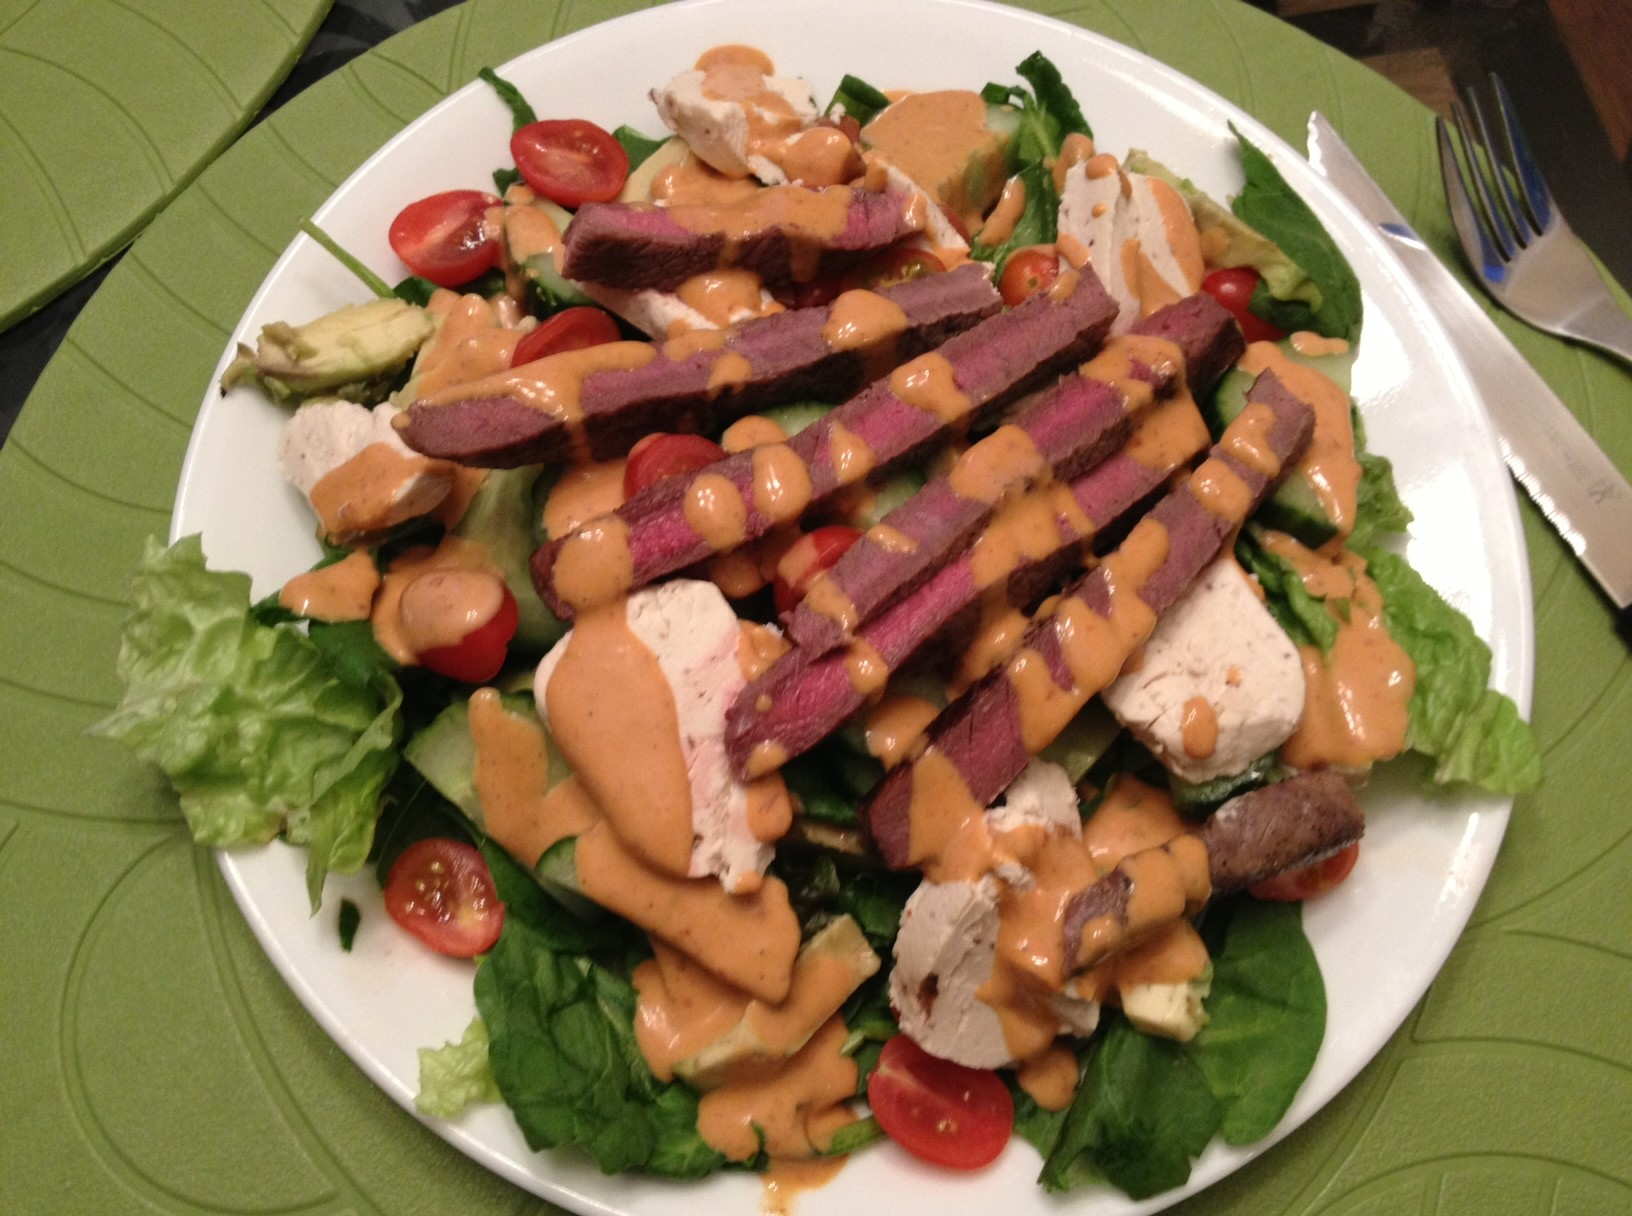 Deluxe Chipotle Salad Dressing